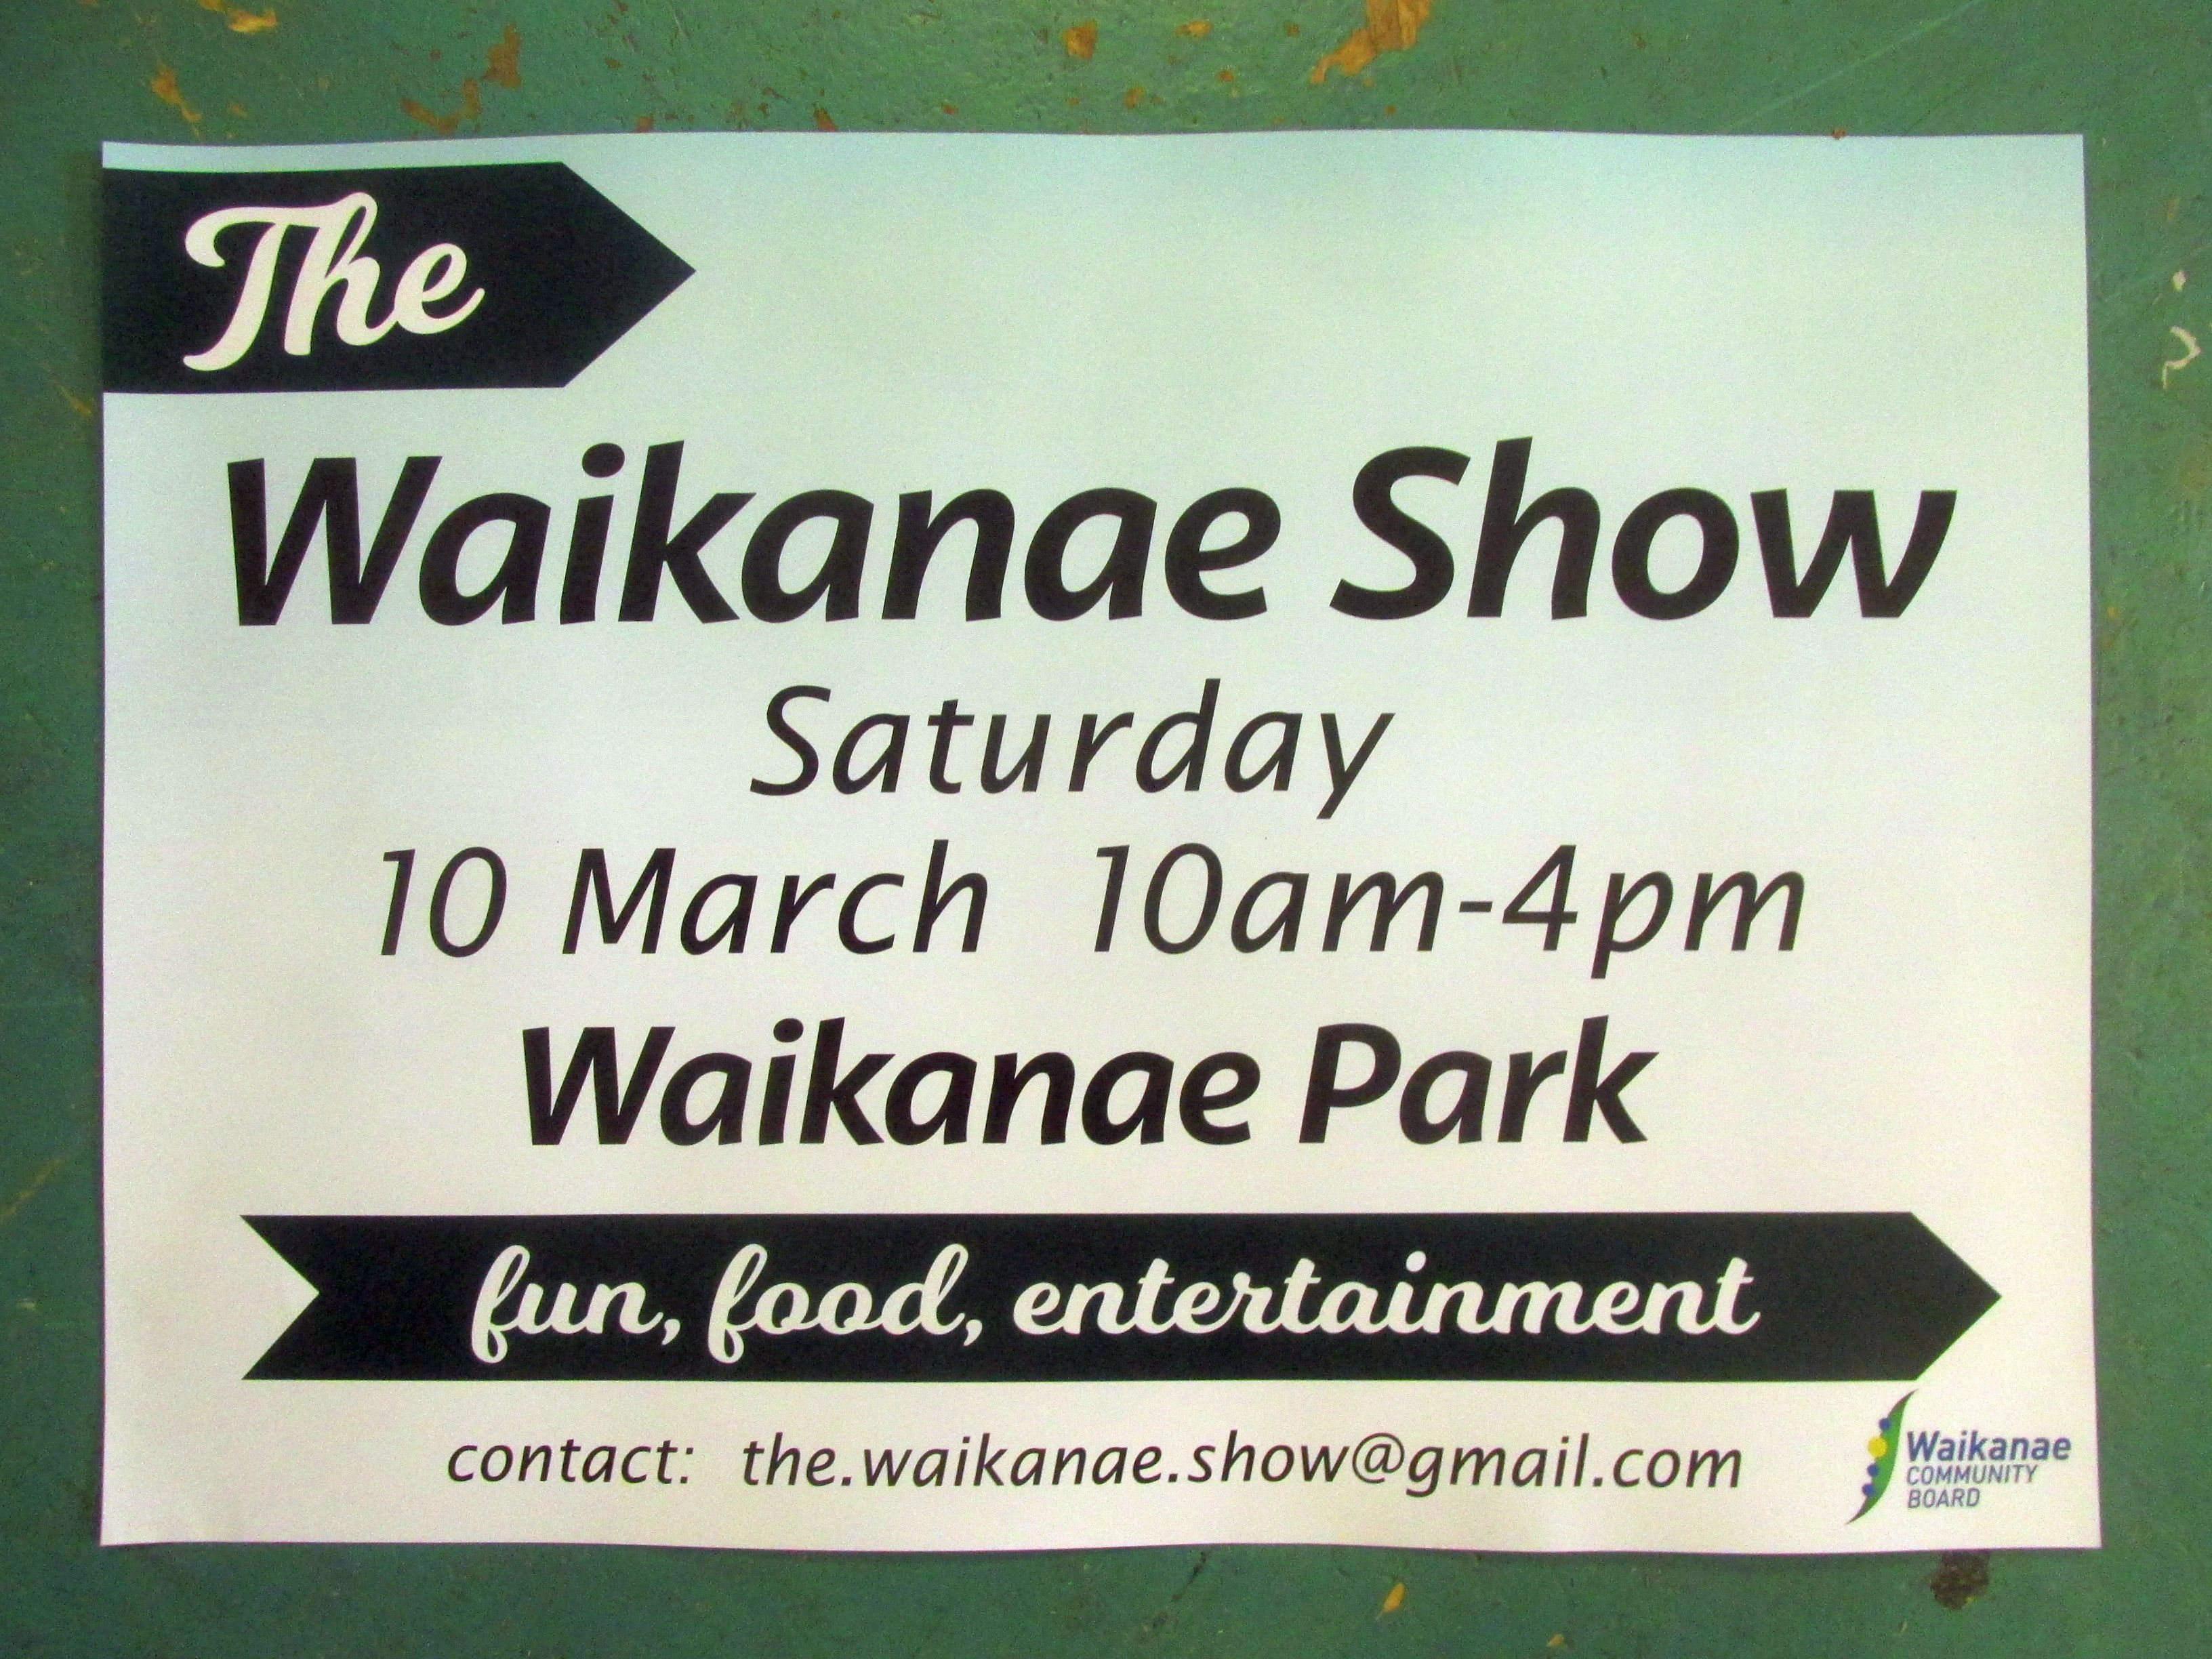 Waikanae Show Poster with details